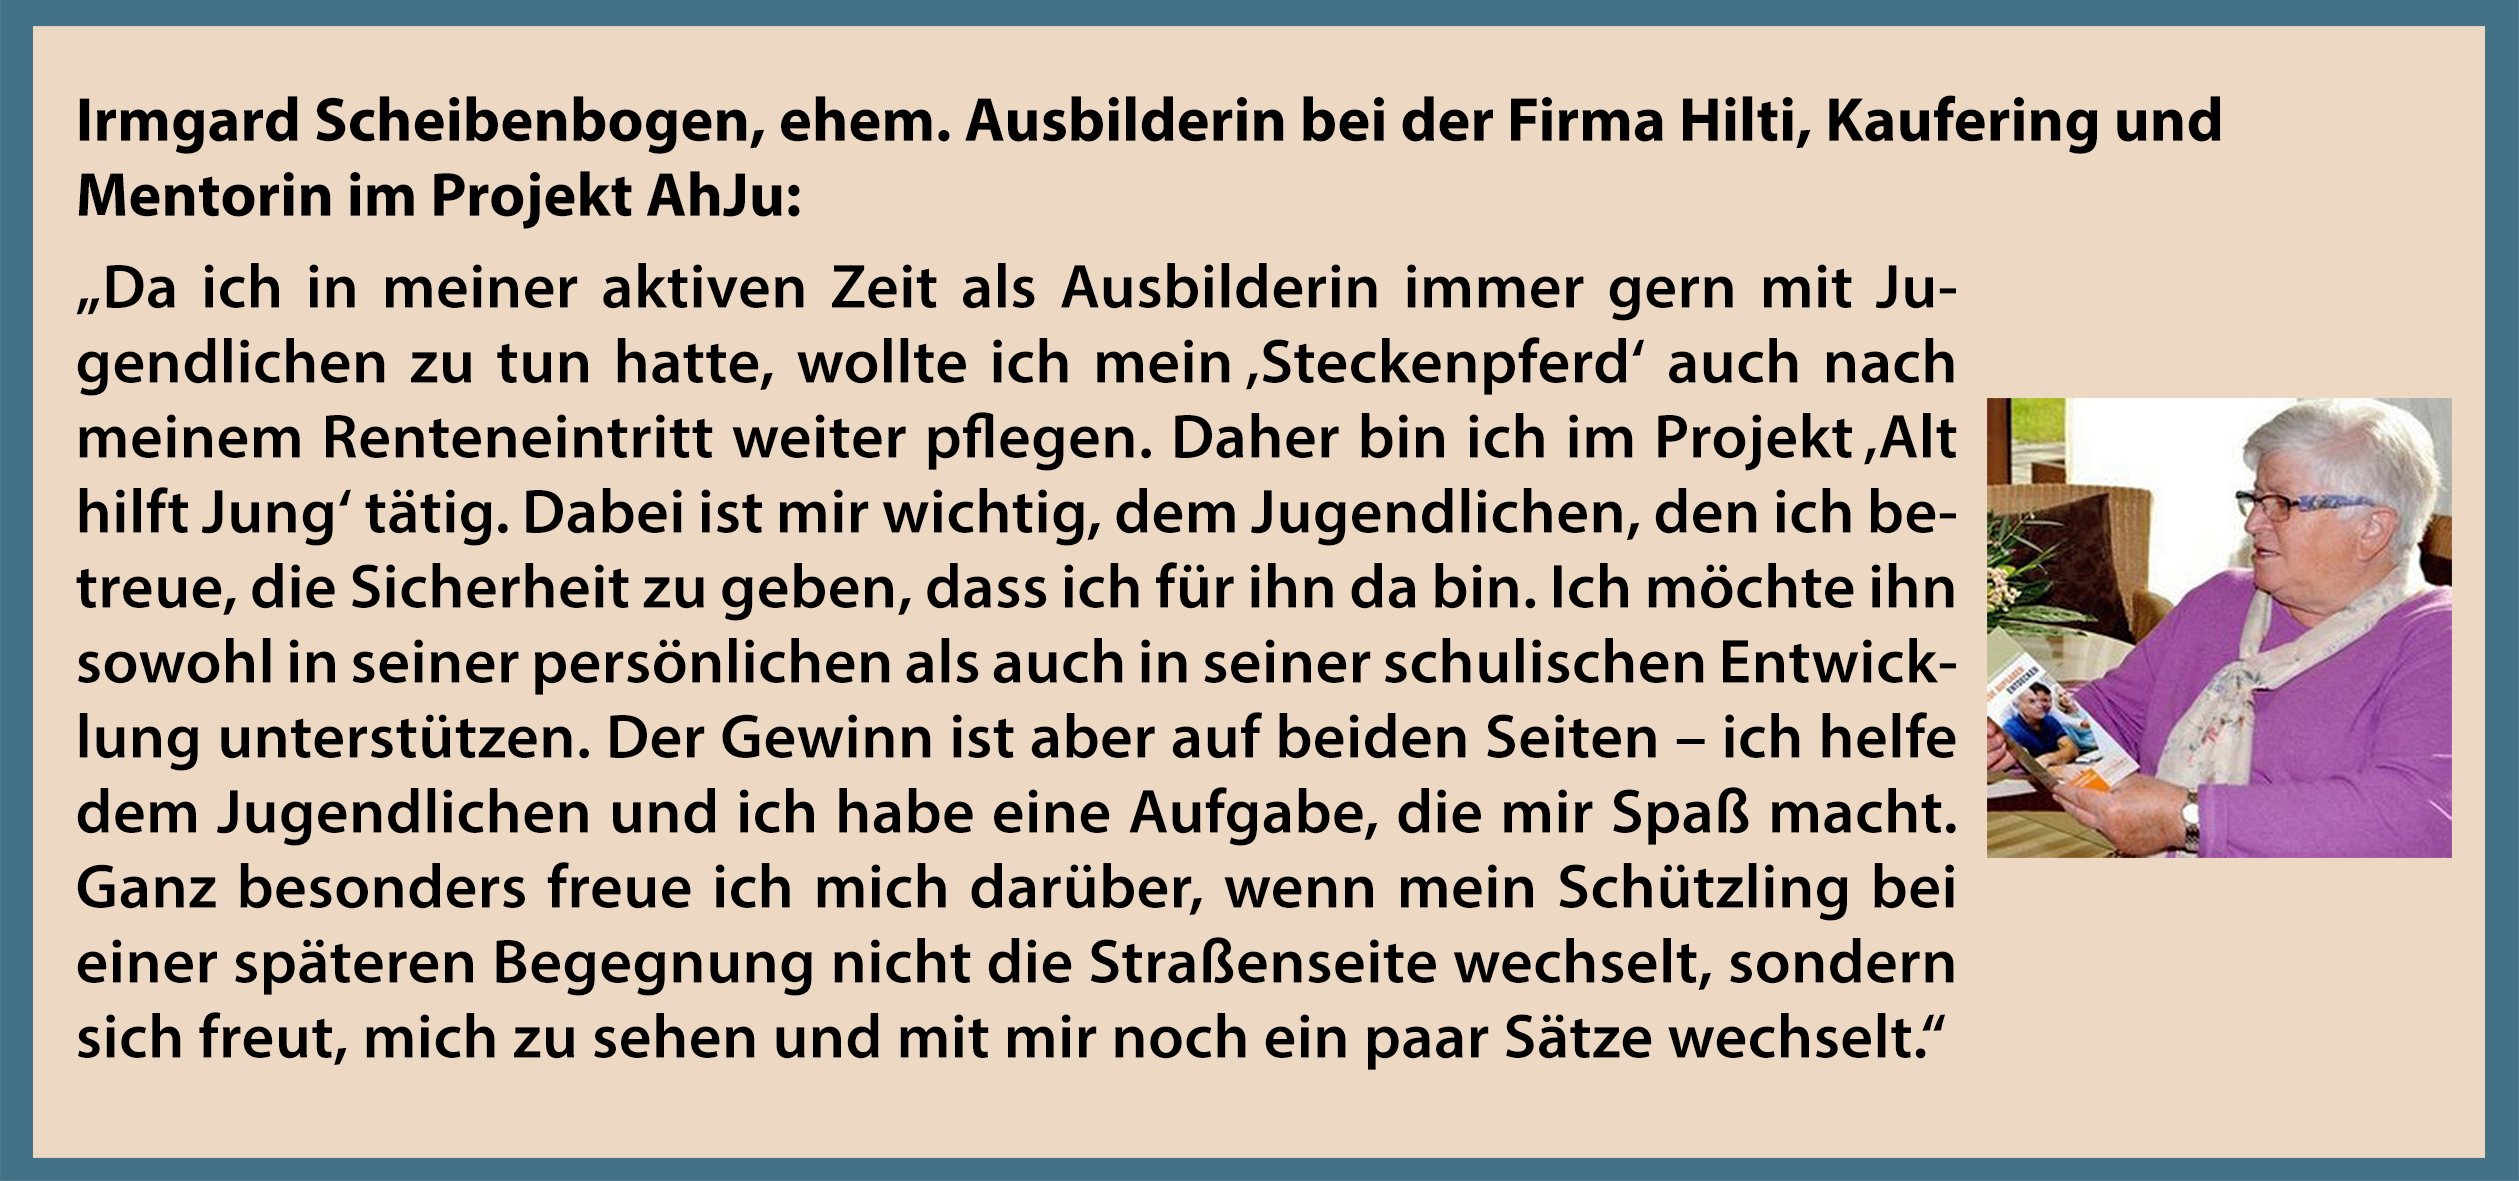 Interview_Scheibenbogen-3a